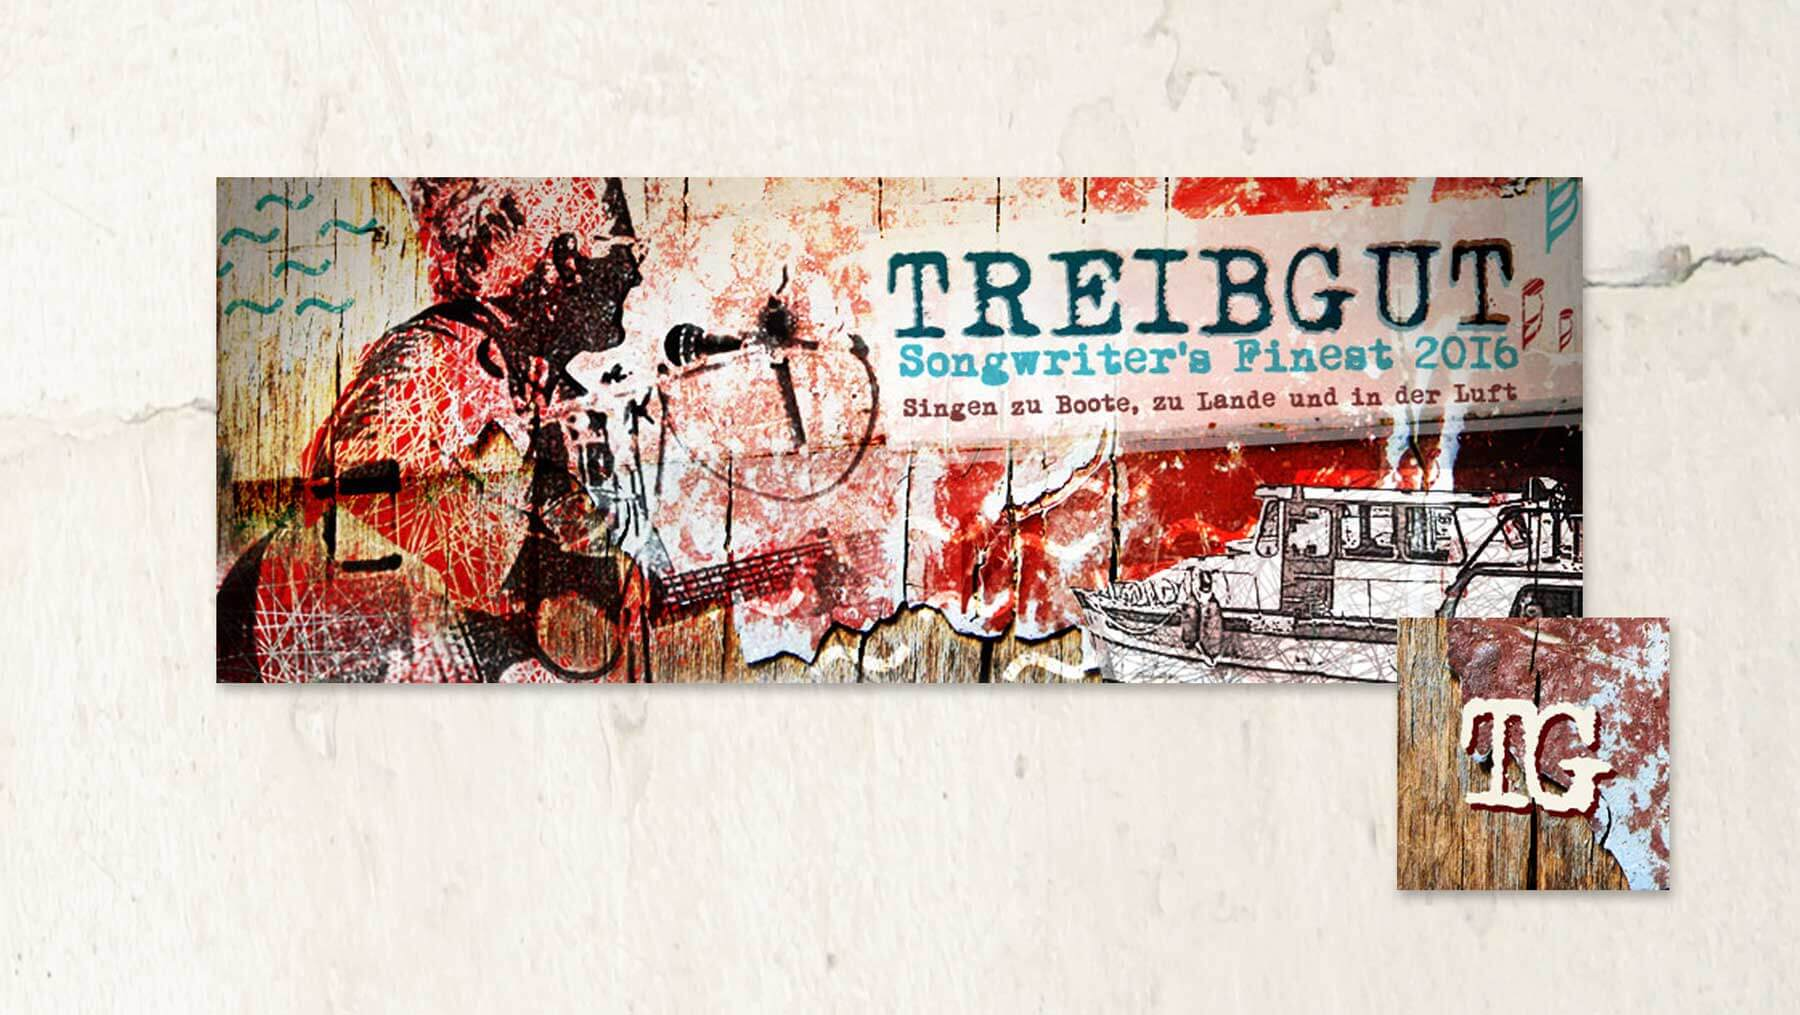 Treibgut - Songwriters Finest Facebook Banner